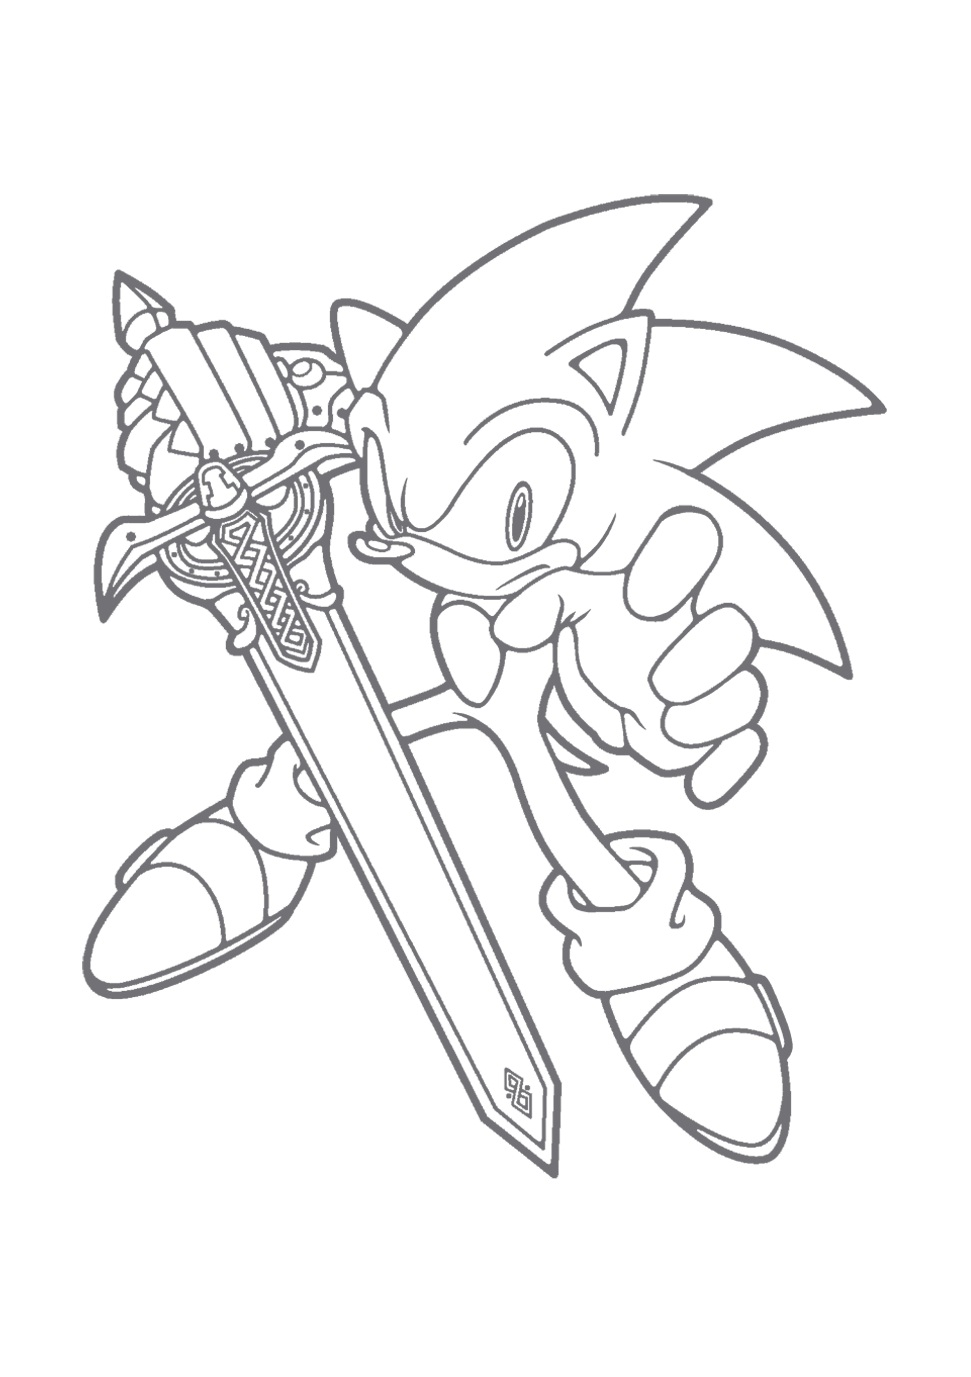 graphic regarding Sonic Printable Coloring Pages titled Cost-free Printable Sonic The Hedgehog Coloring Web pages For Small children